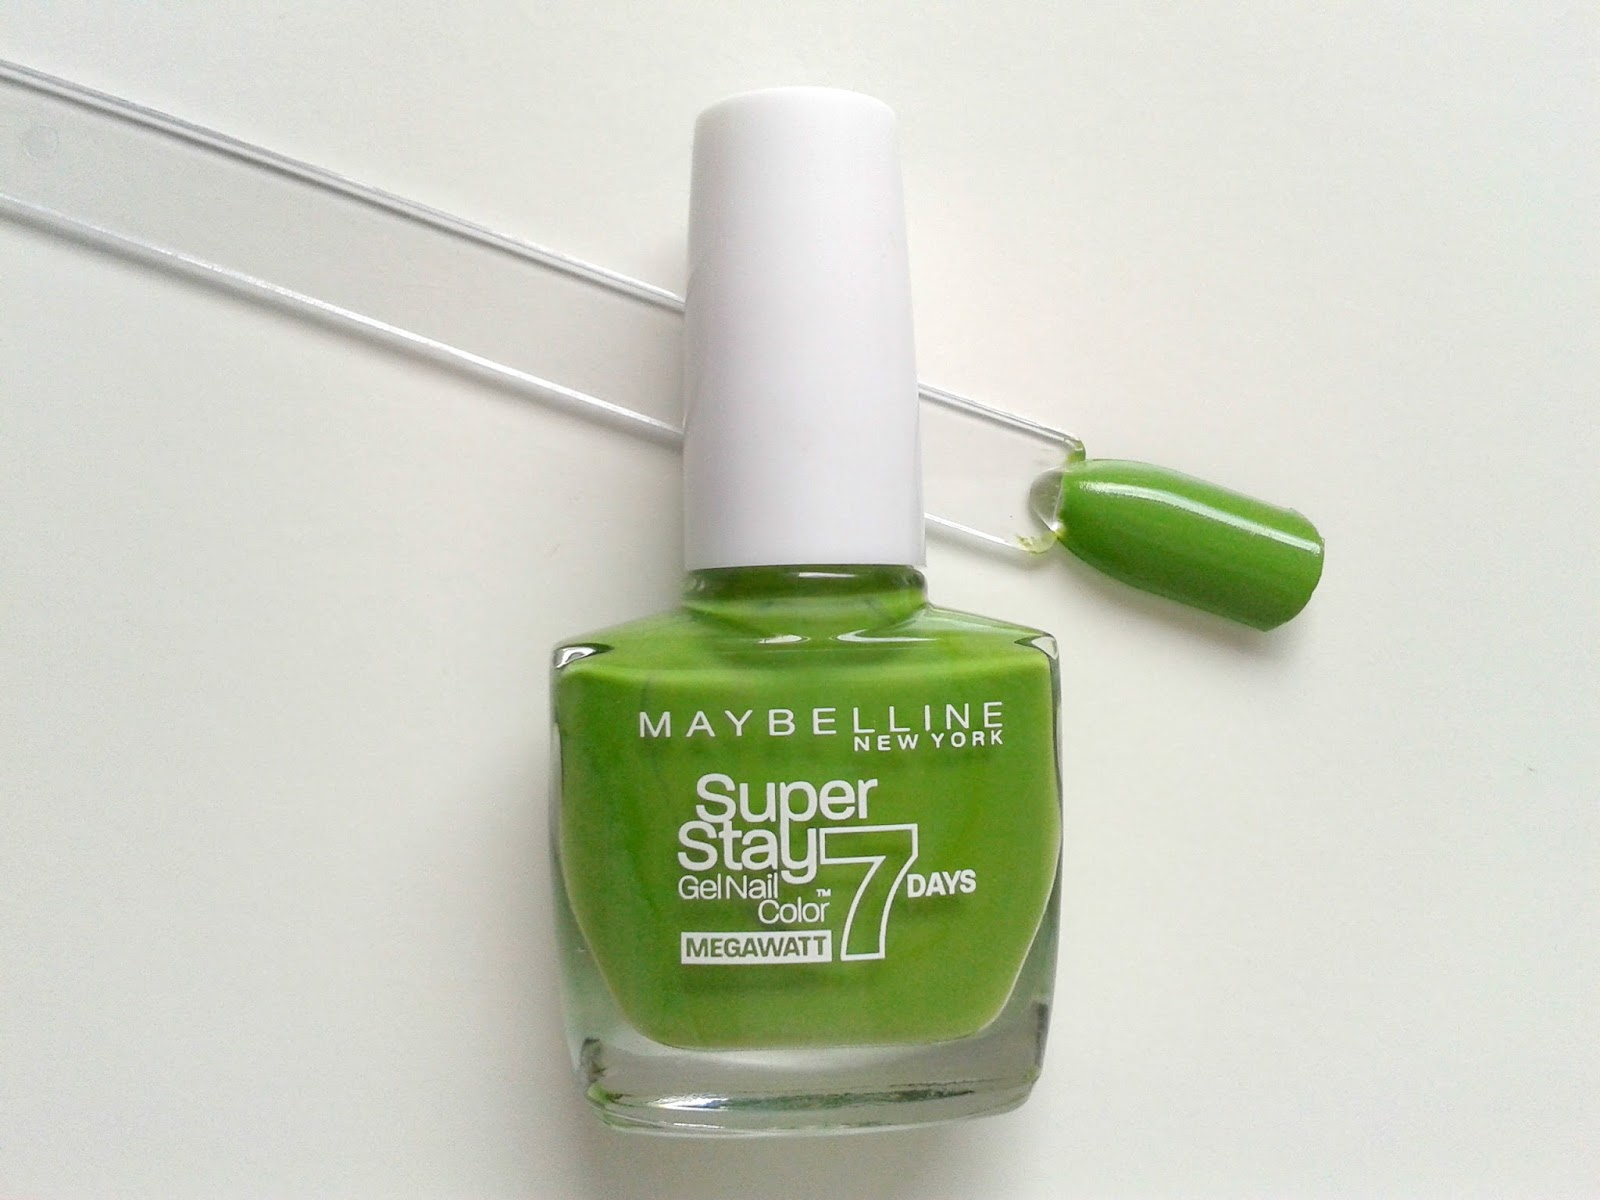 Maybelline New York Super Stay 7 Days Gel Nail Colours Beauty Review Lime me up Swatch